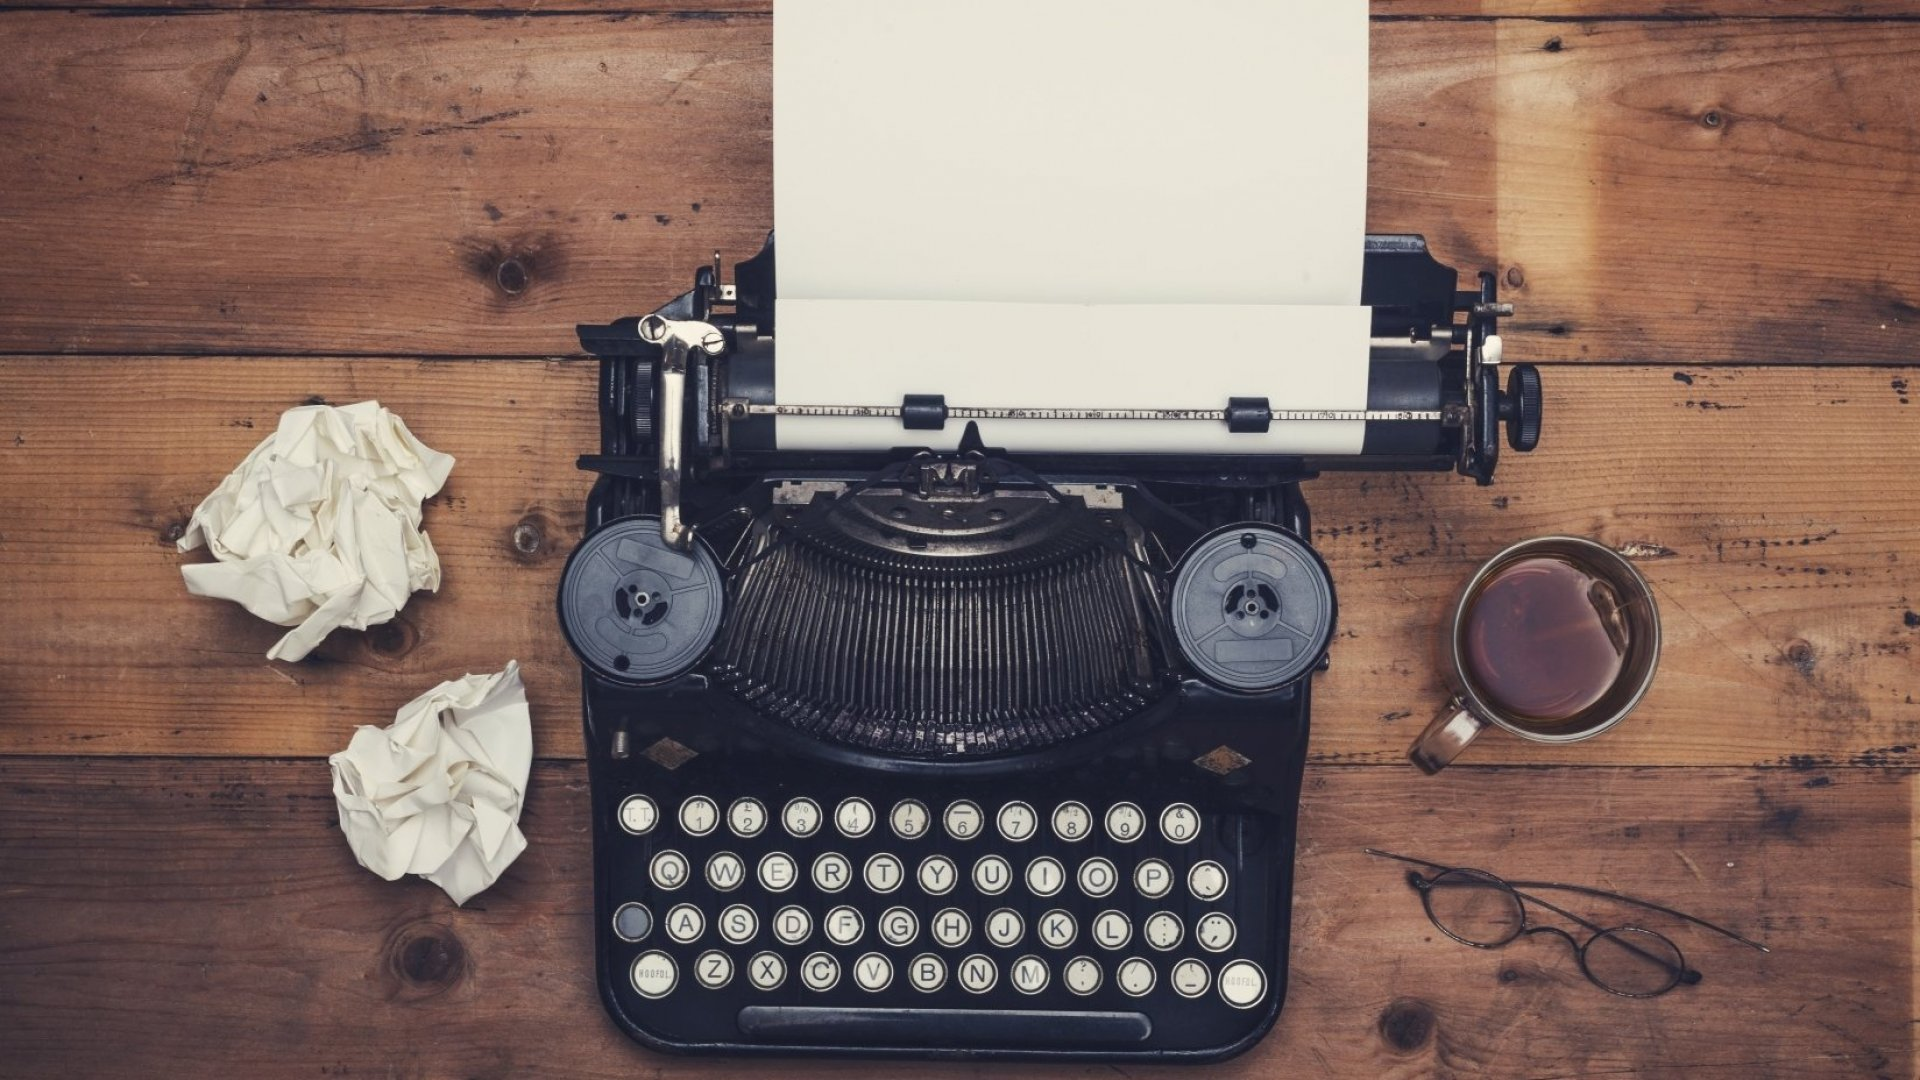 A How-to Guide to Writing Emails That Make You Sound Smart